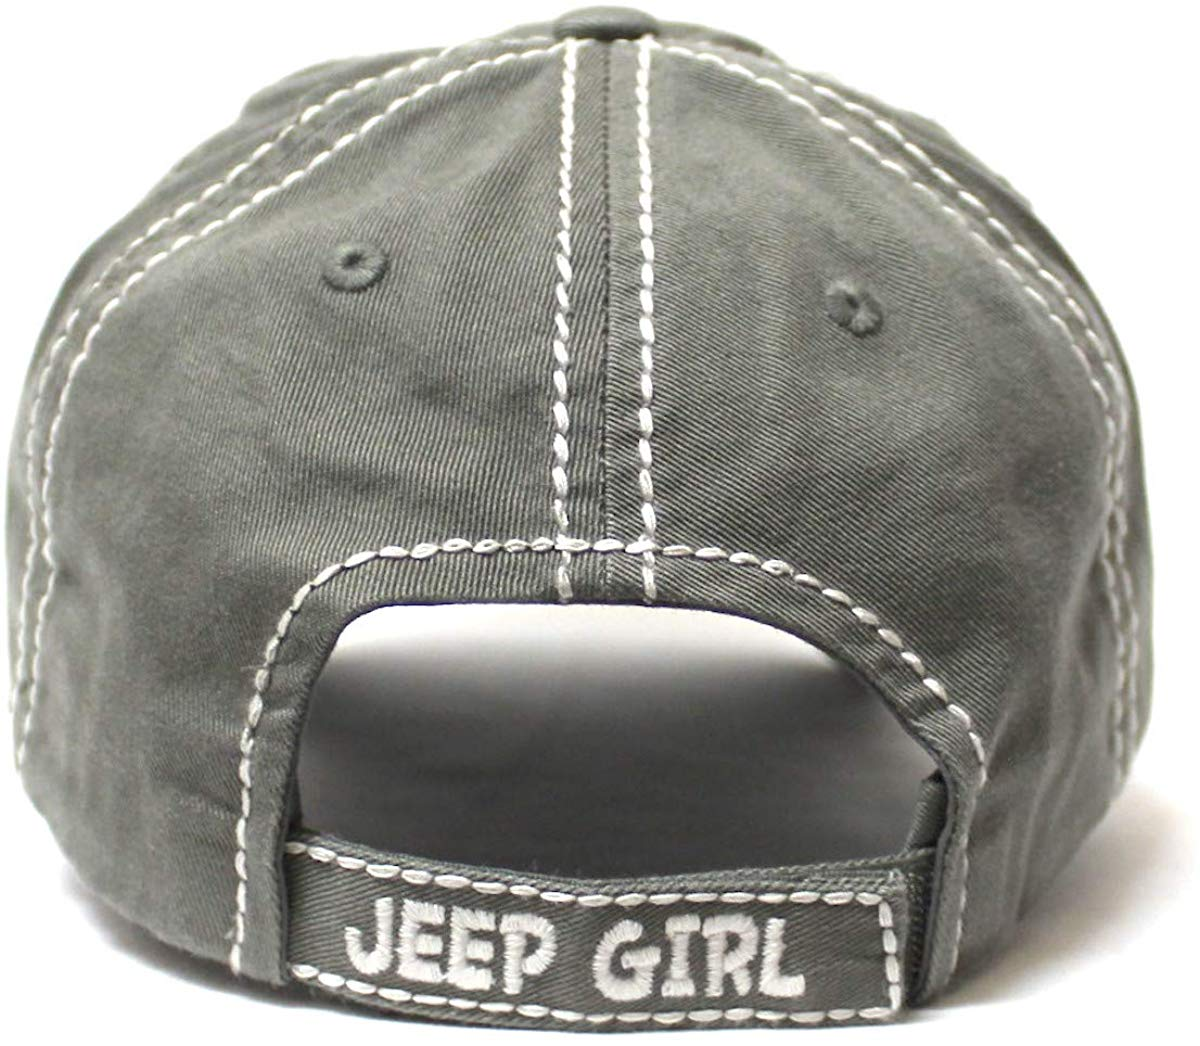 Women's Ballcap Jeep Girl Pink Glitter, Hearts Patch Embroidery Hat, Silver Mist Grey - Caps 'N Vintage